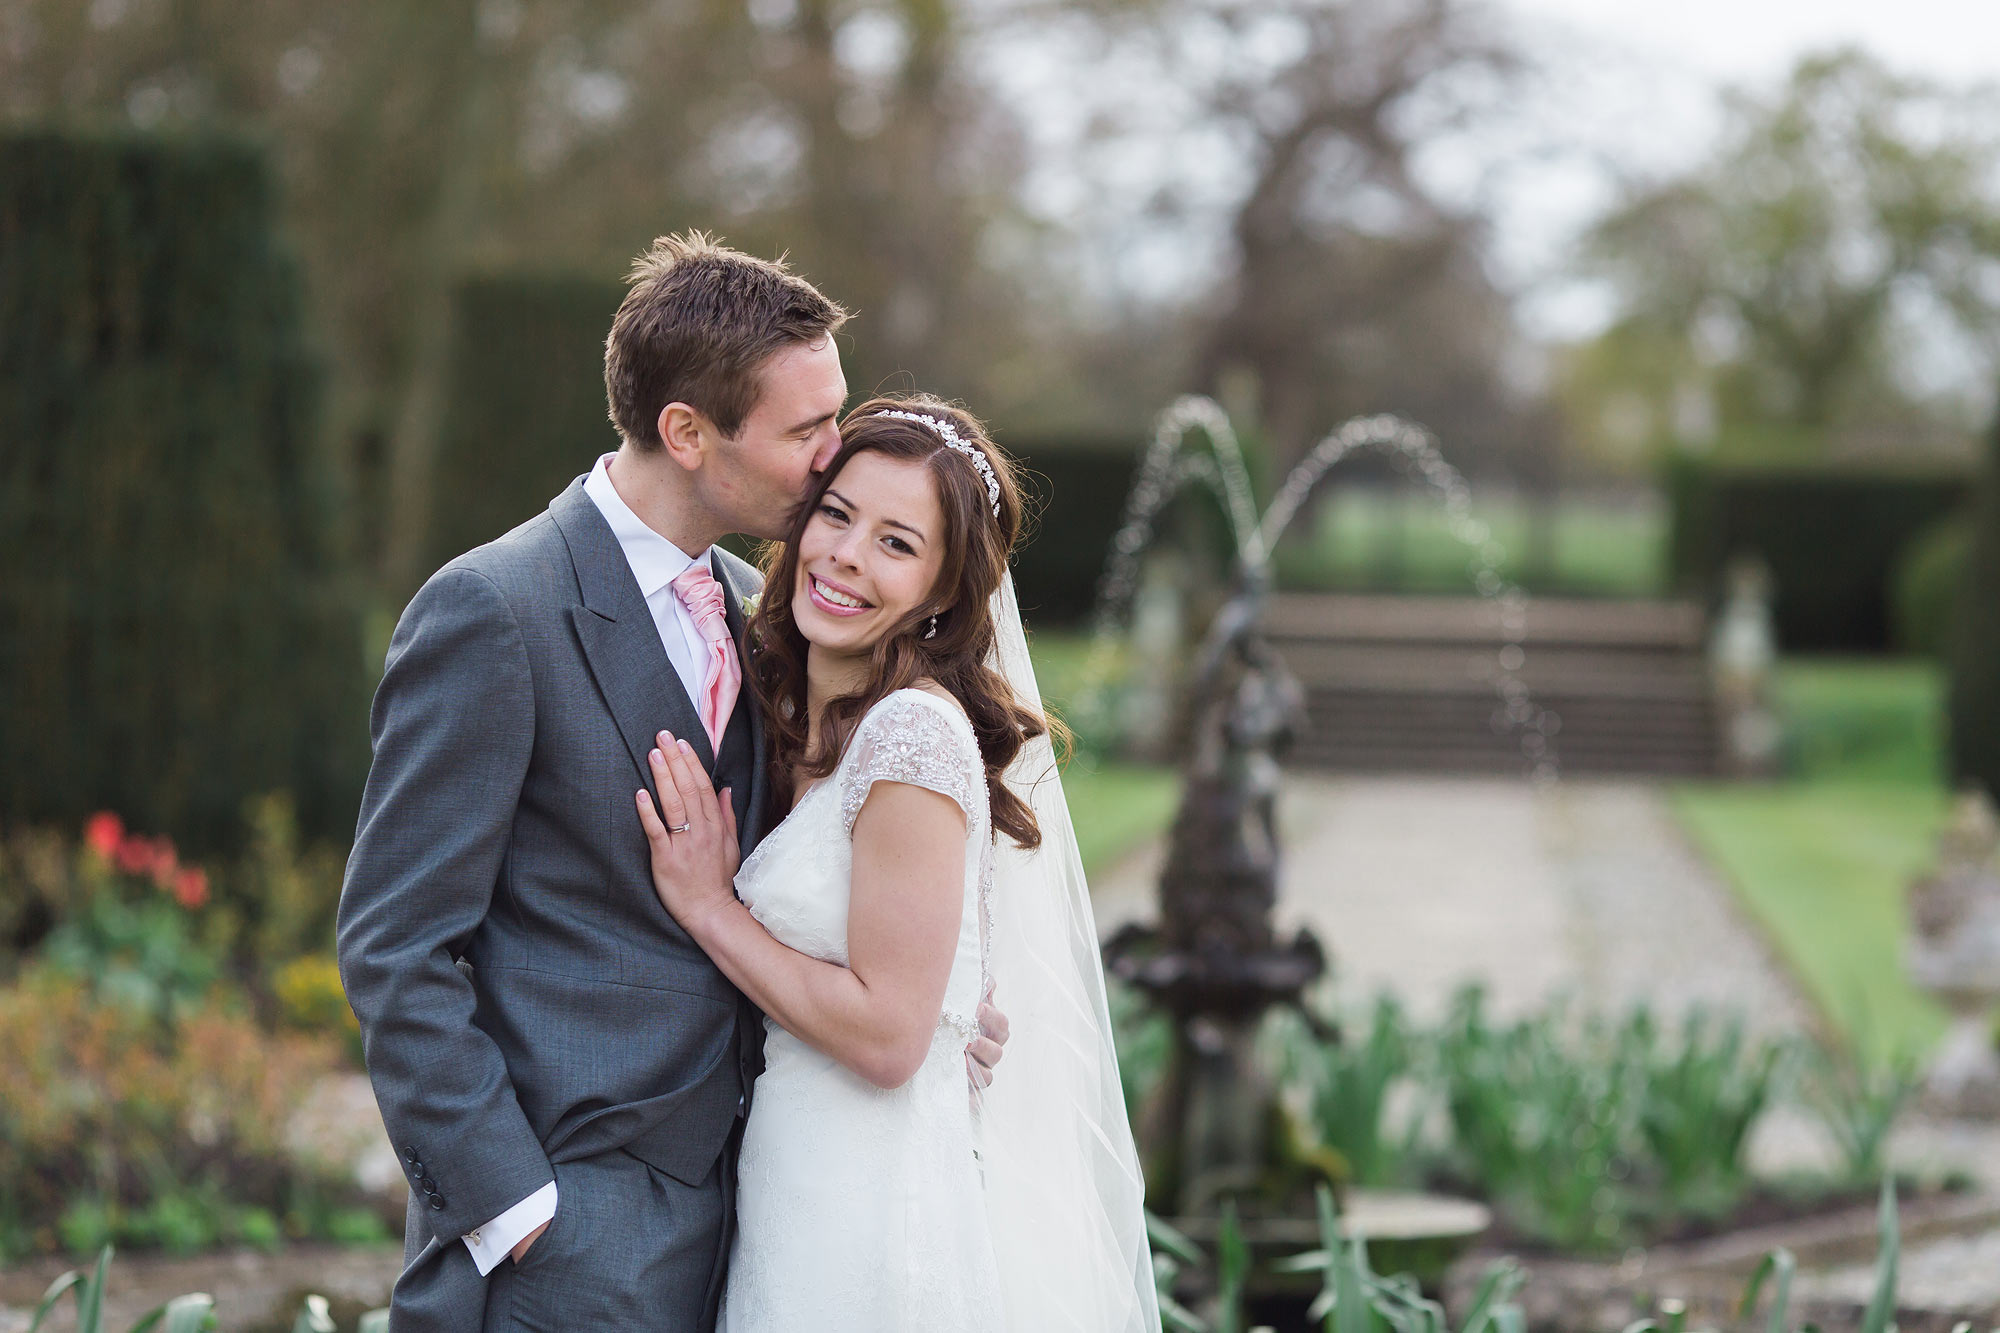 Wedding photography at Hengrave Hall. Jack kisses Amy.